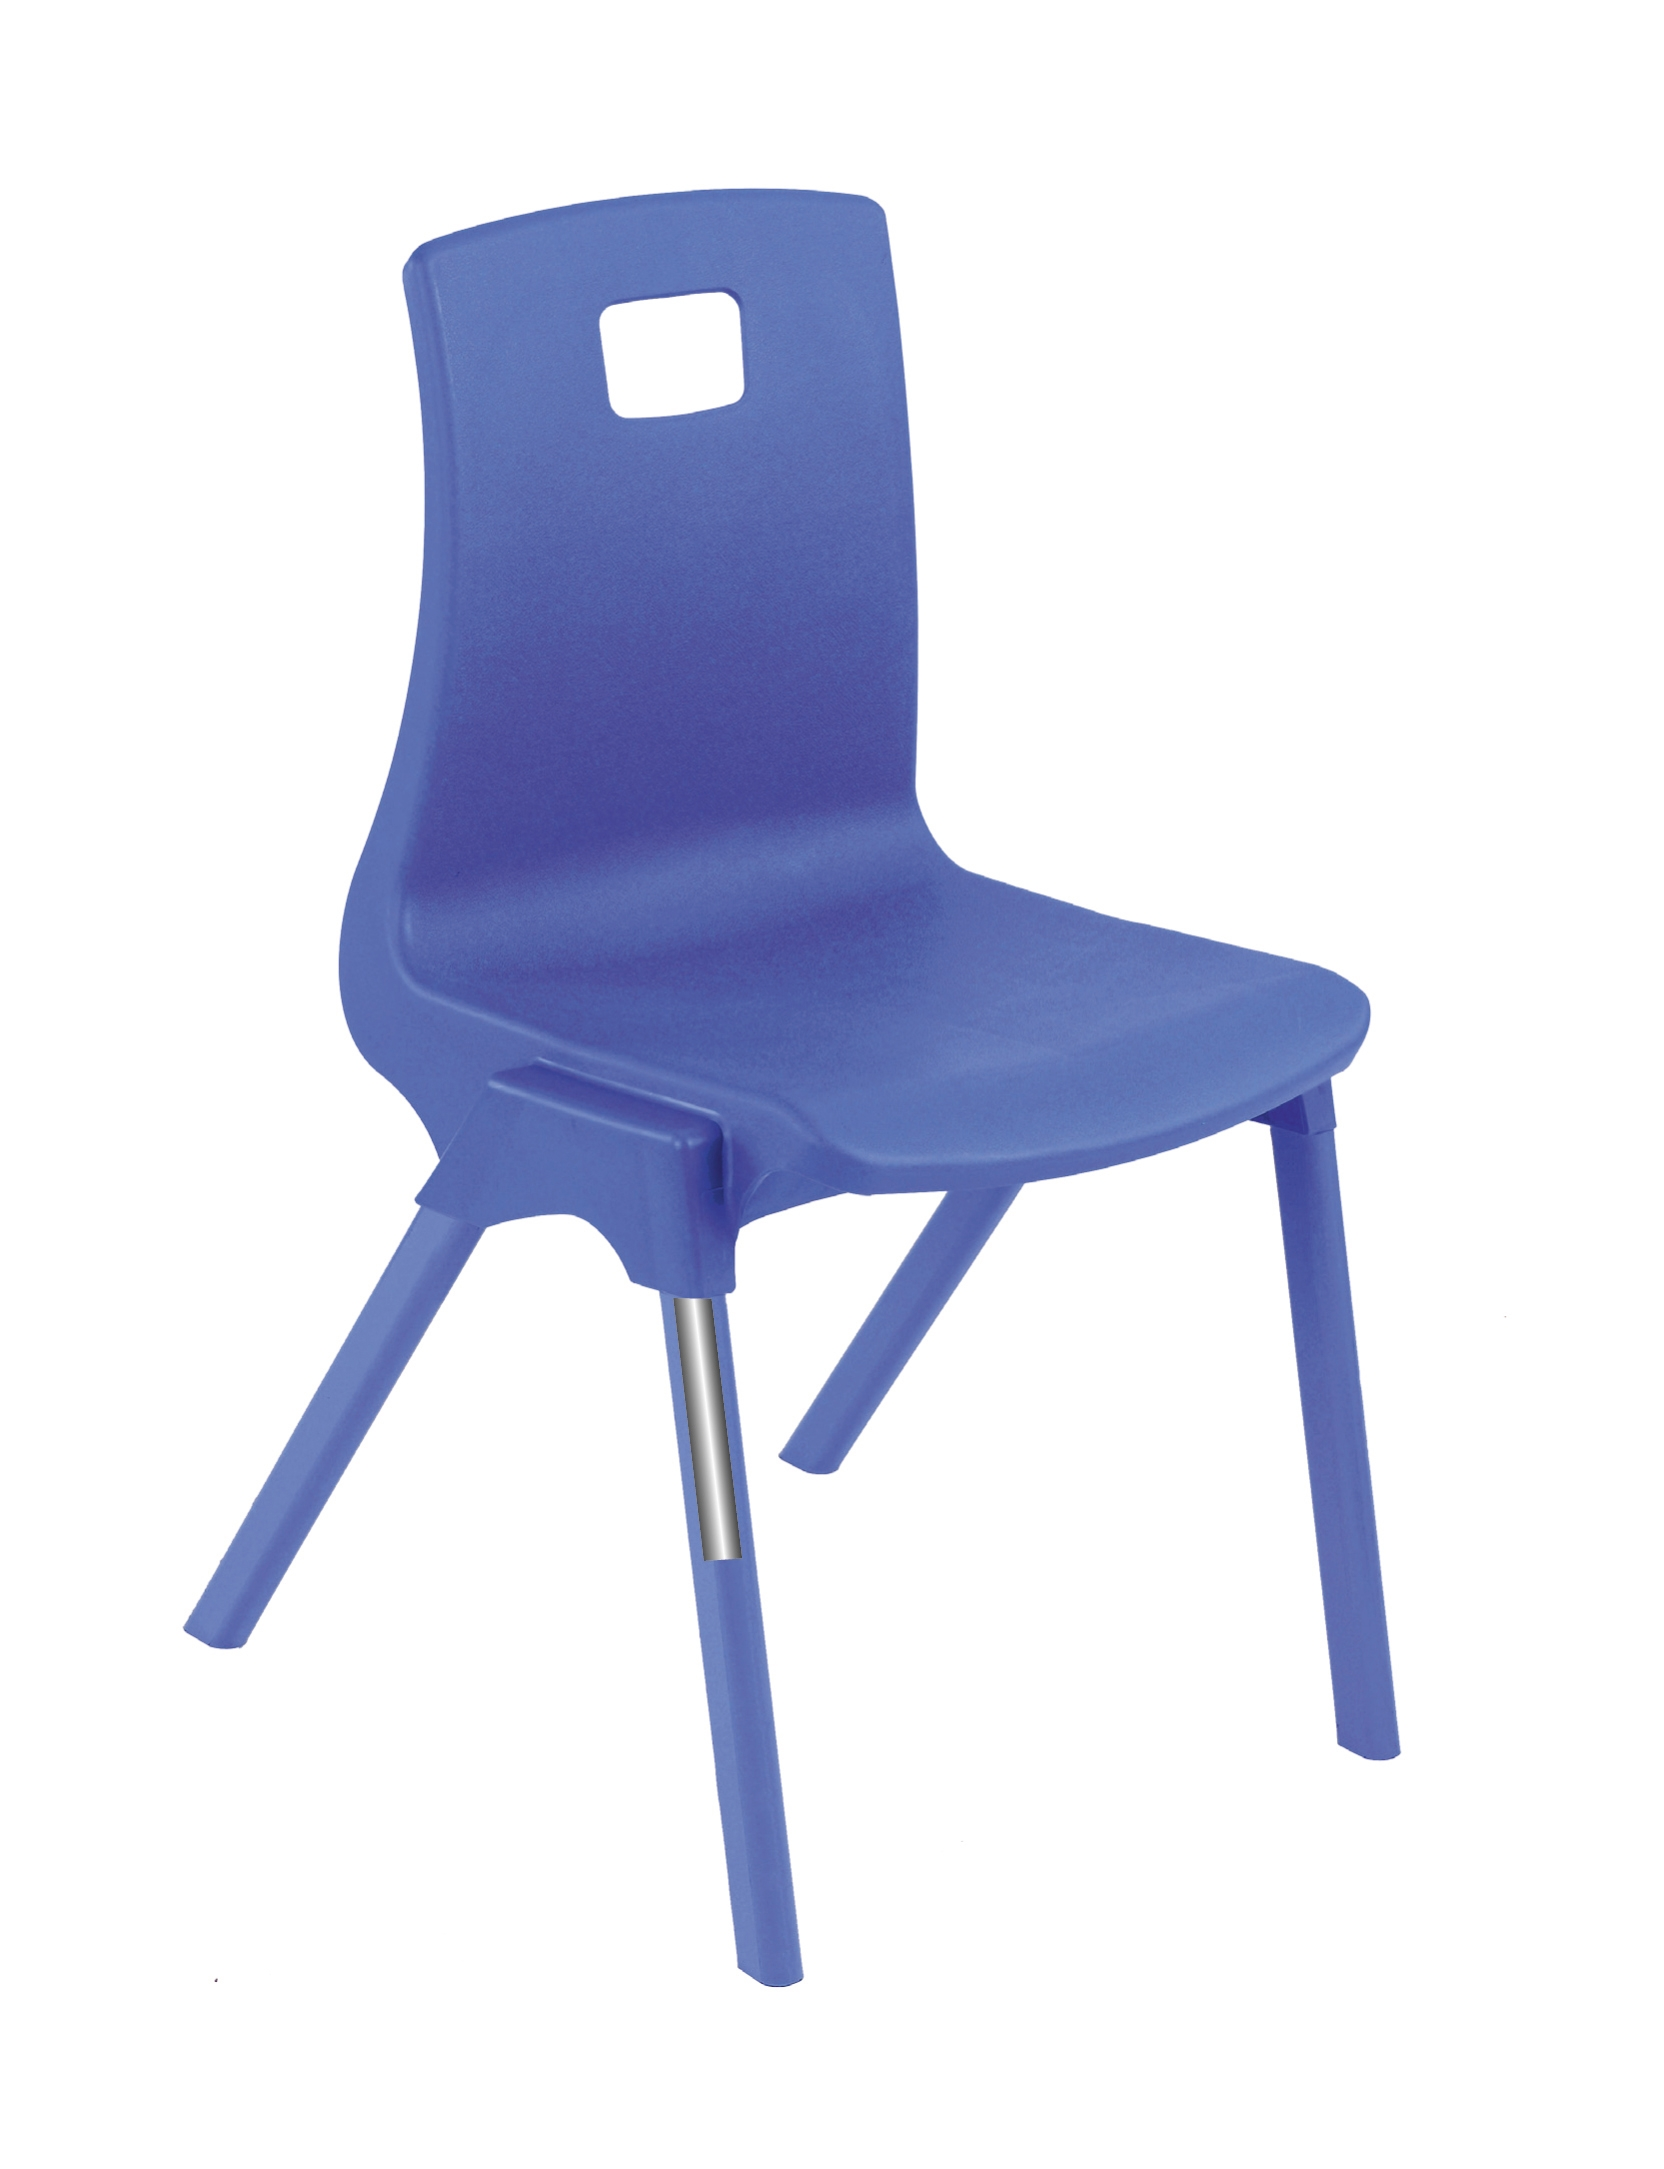 Free cliparts download clip. Clipart chair school